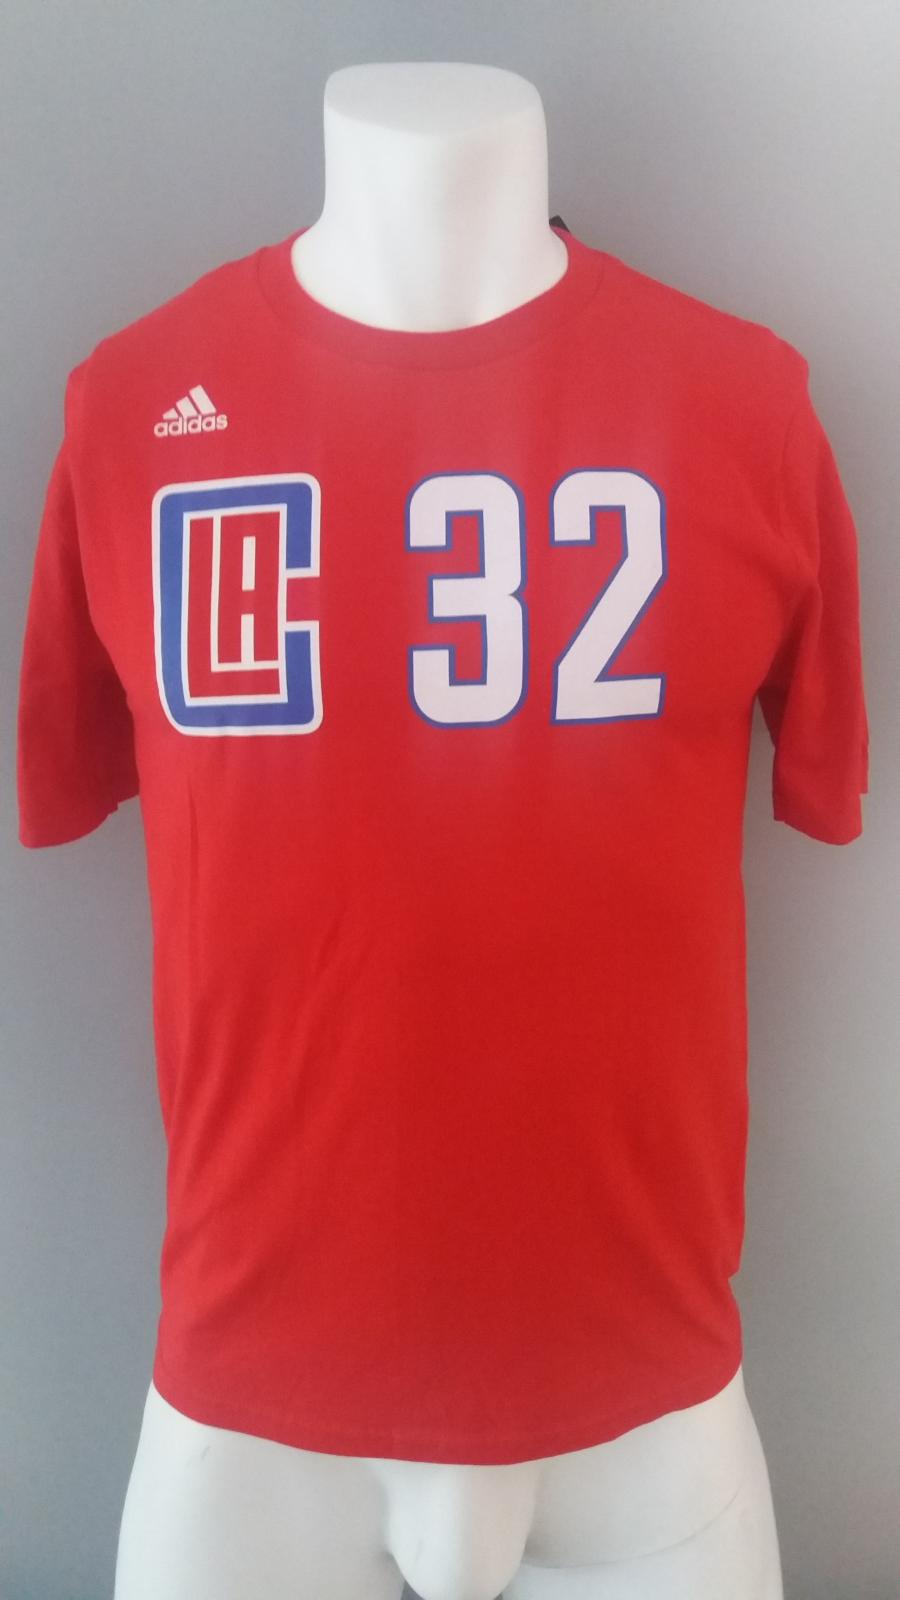 Jersey - T-shirt - Joven - Blake Griffin - LA Clippers - Alternate - Adidas